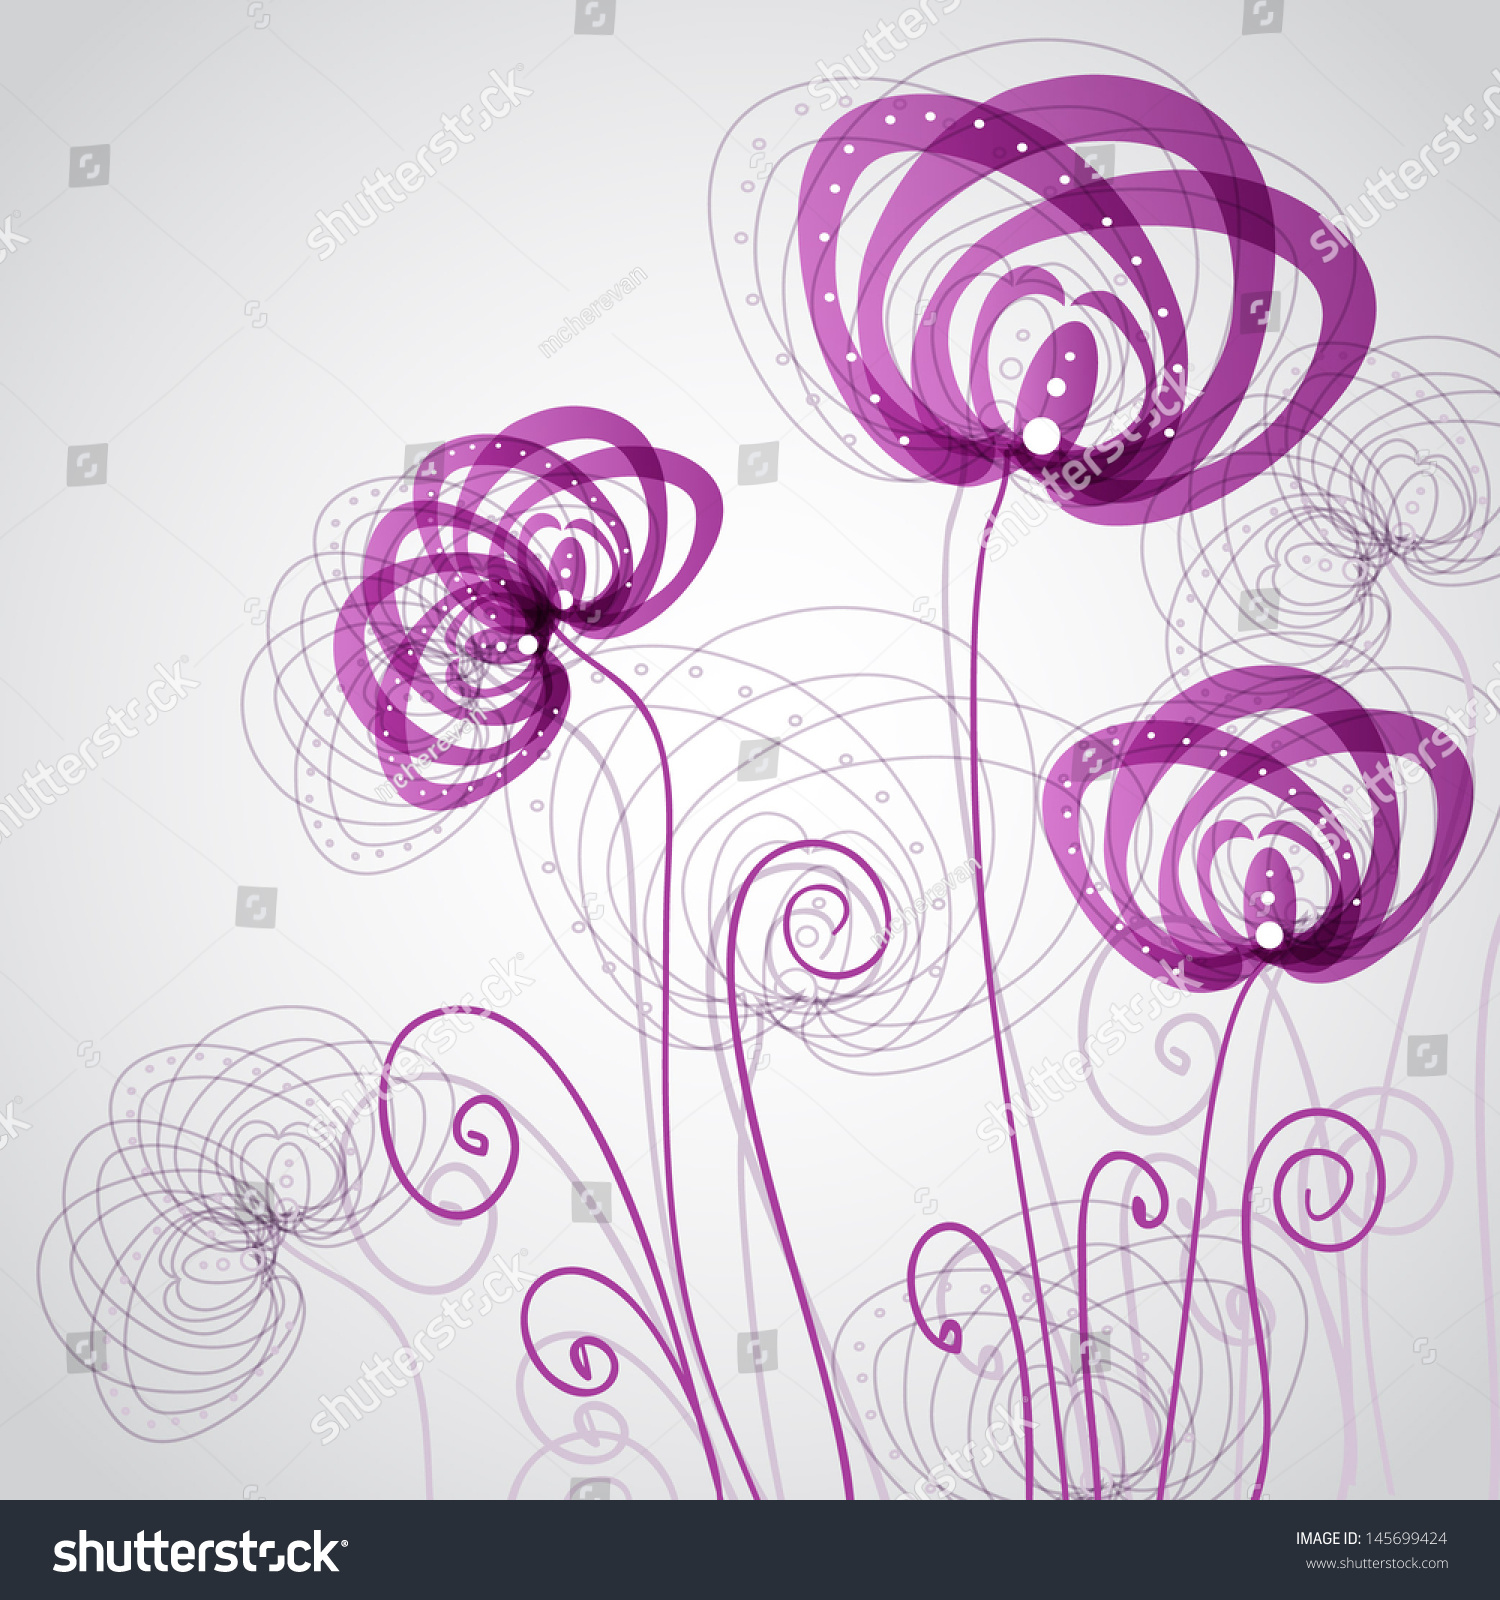 Abstract violet flowers corner floral background stock vector 2018 abstract violet flowers corner floral background for scrapbooking paper textile web mightylinksfo